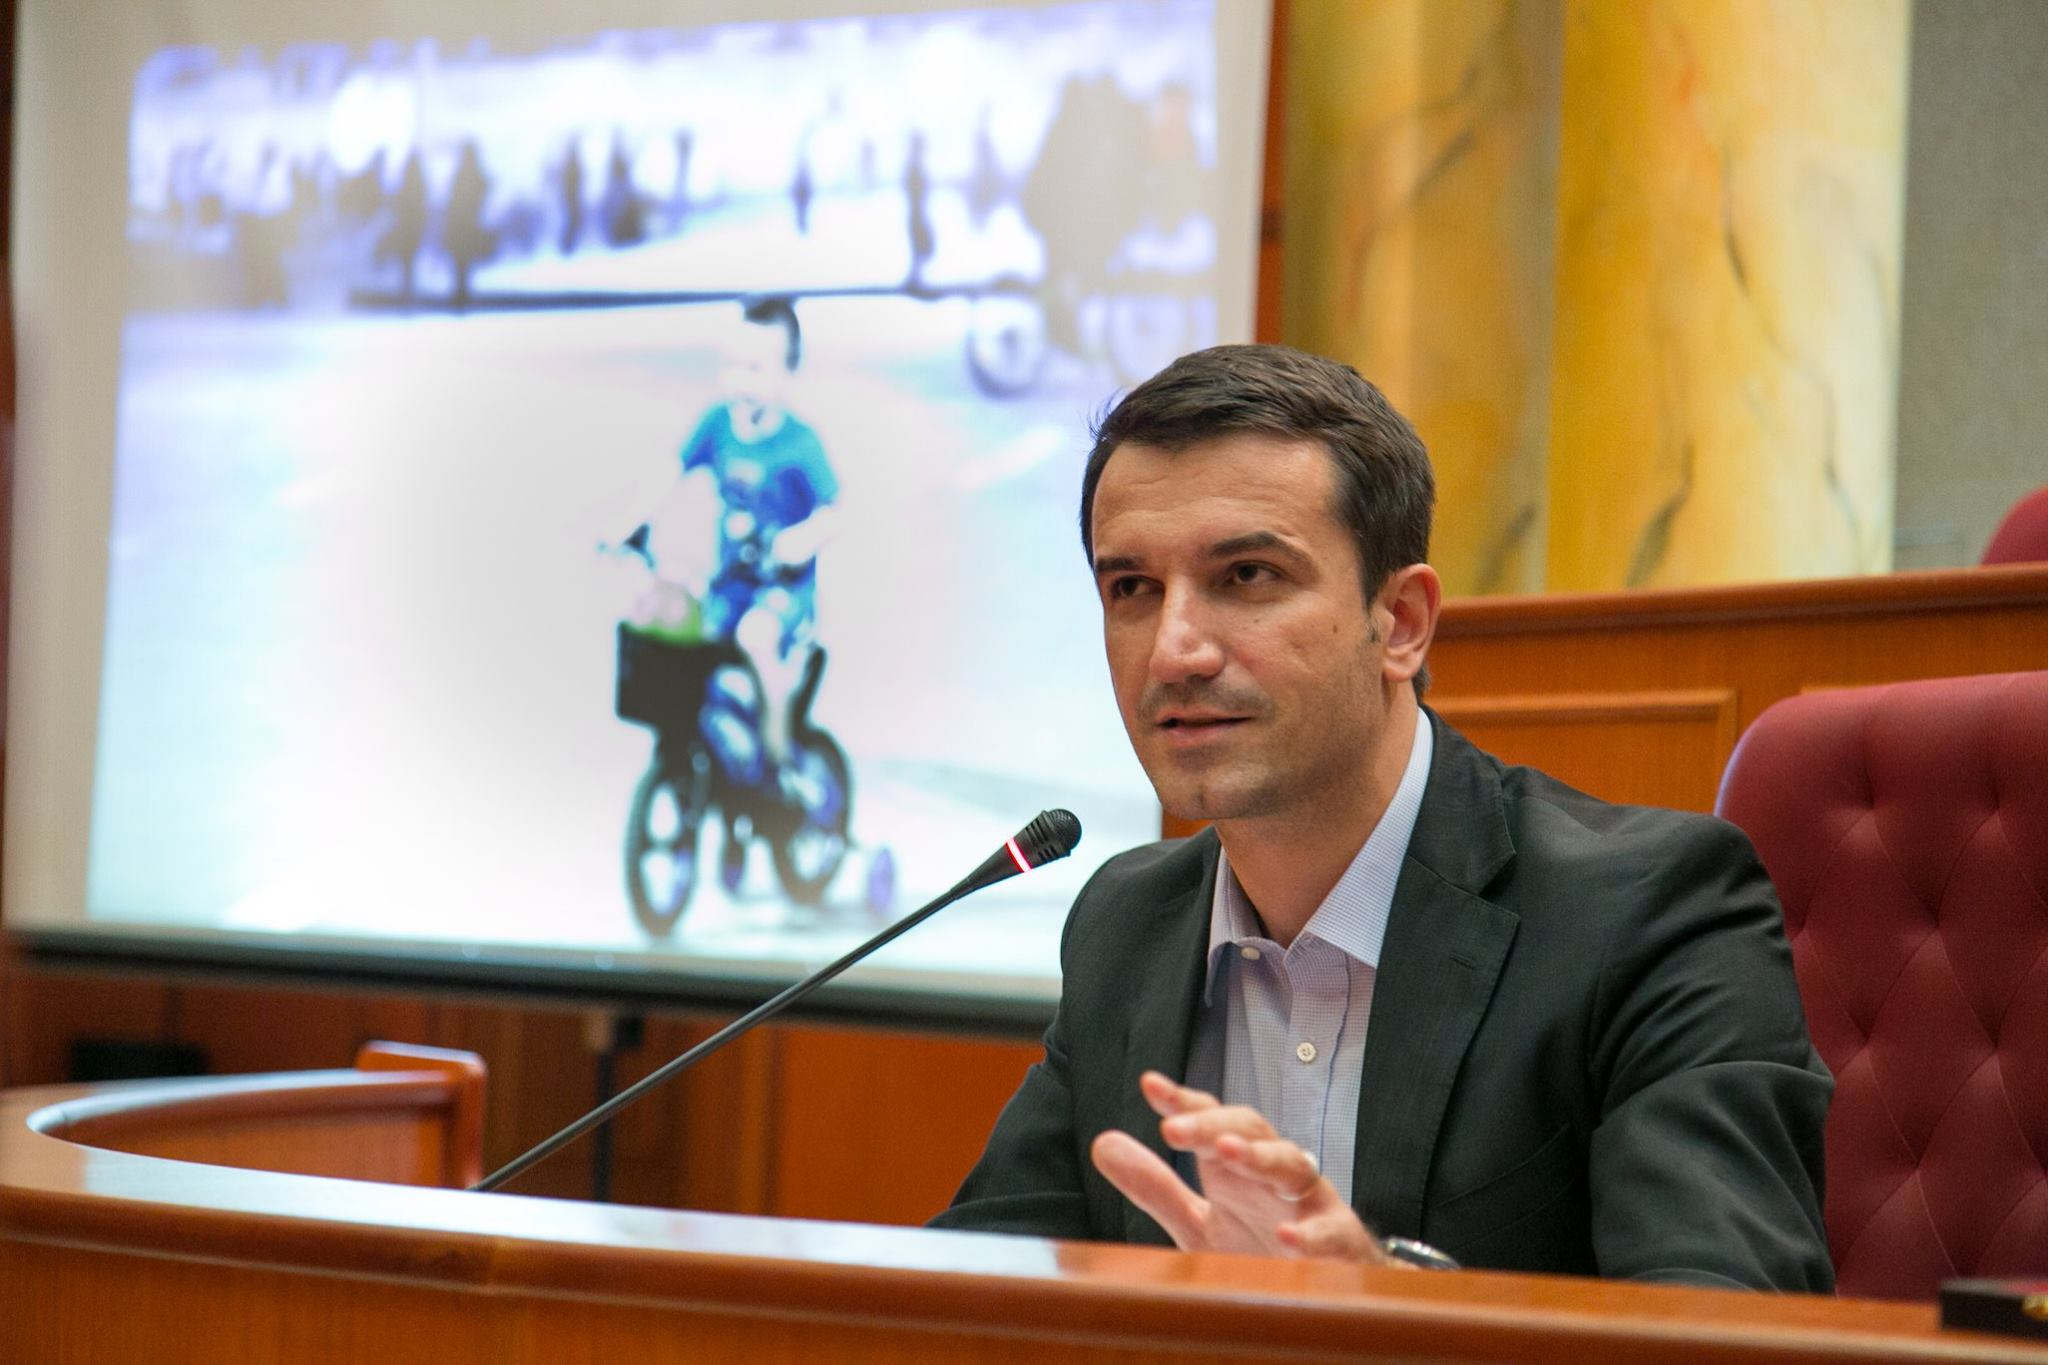 Solidarity, municipality of Tirana allocates 50 thousand euros for the municipality of Athens